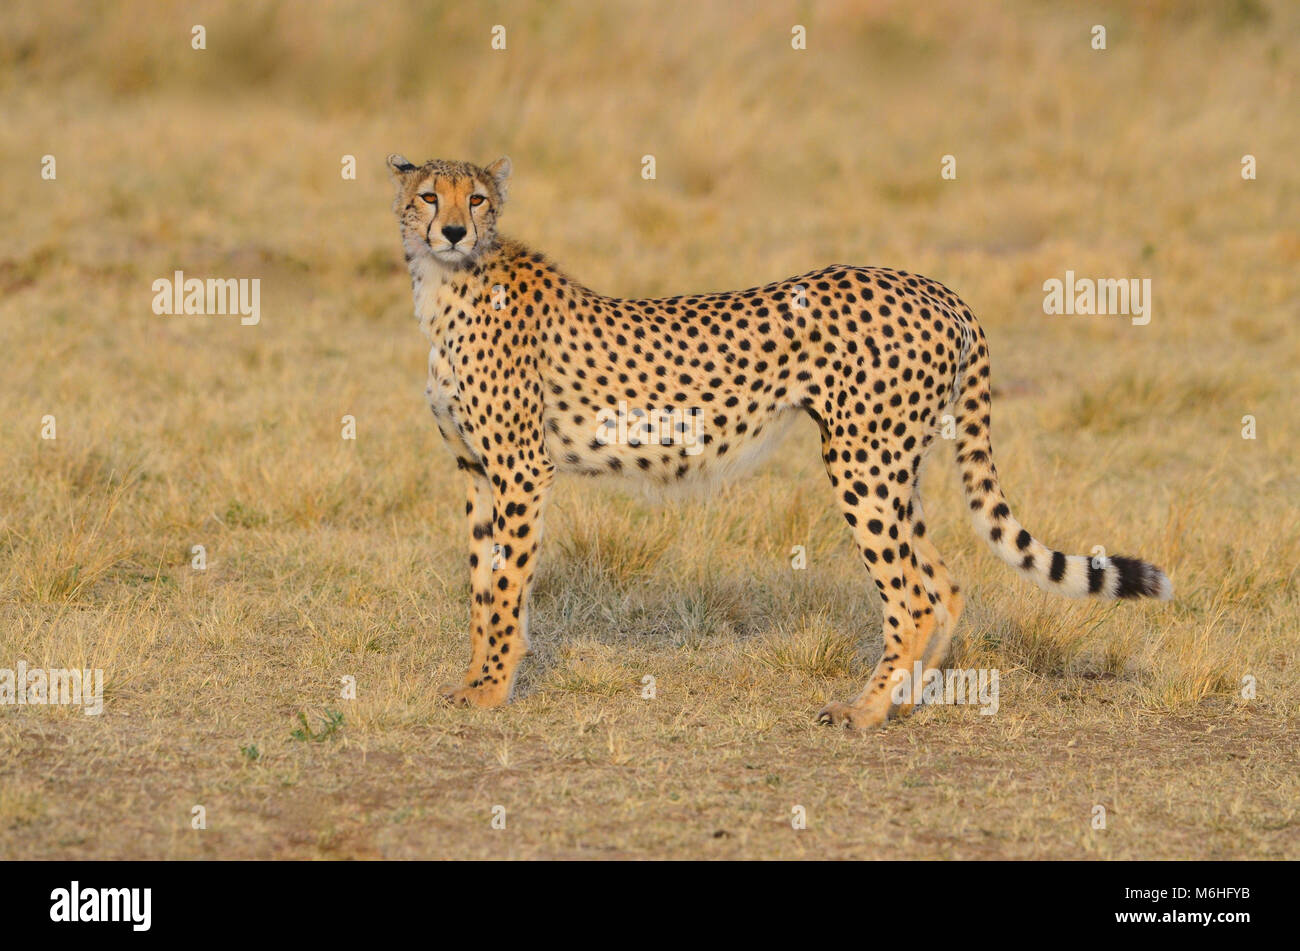 Serengeti National Park in Tanzania, is one of the most spectacular wildlife destinations on earth. Alert cheetah - Stock Image